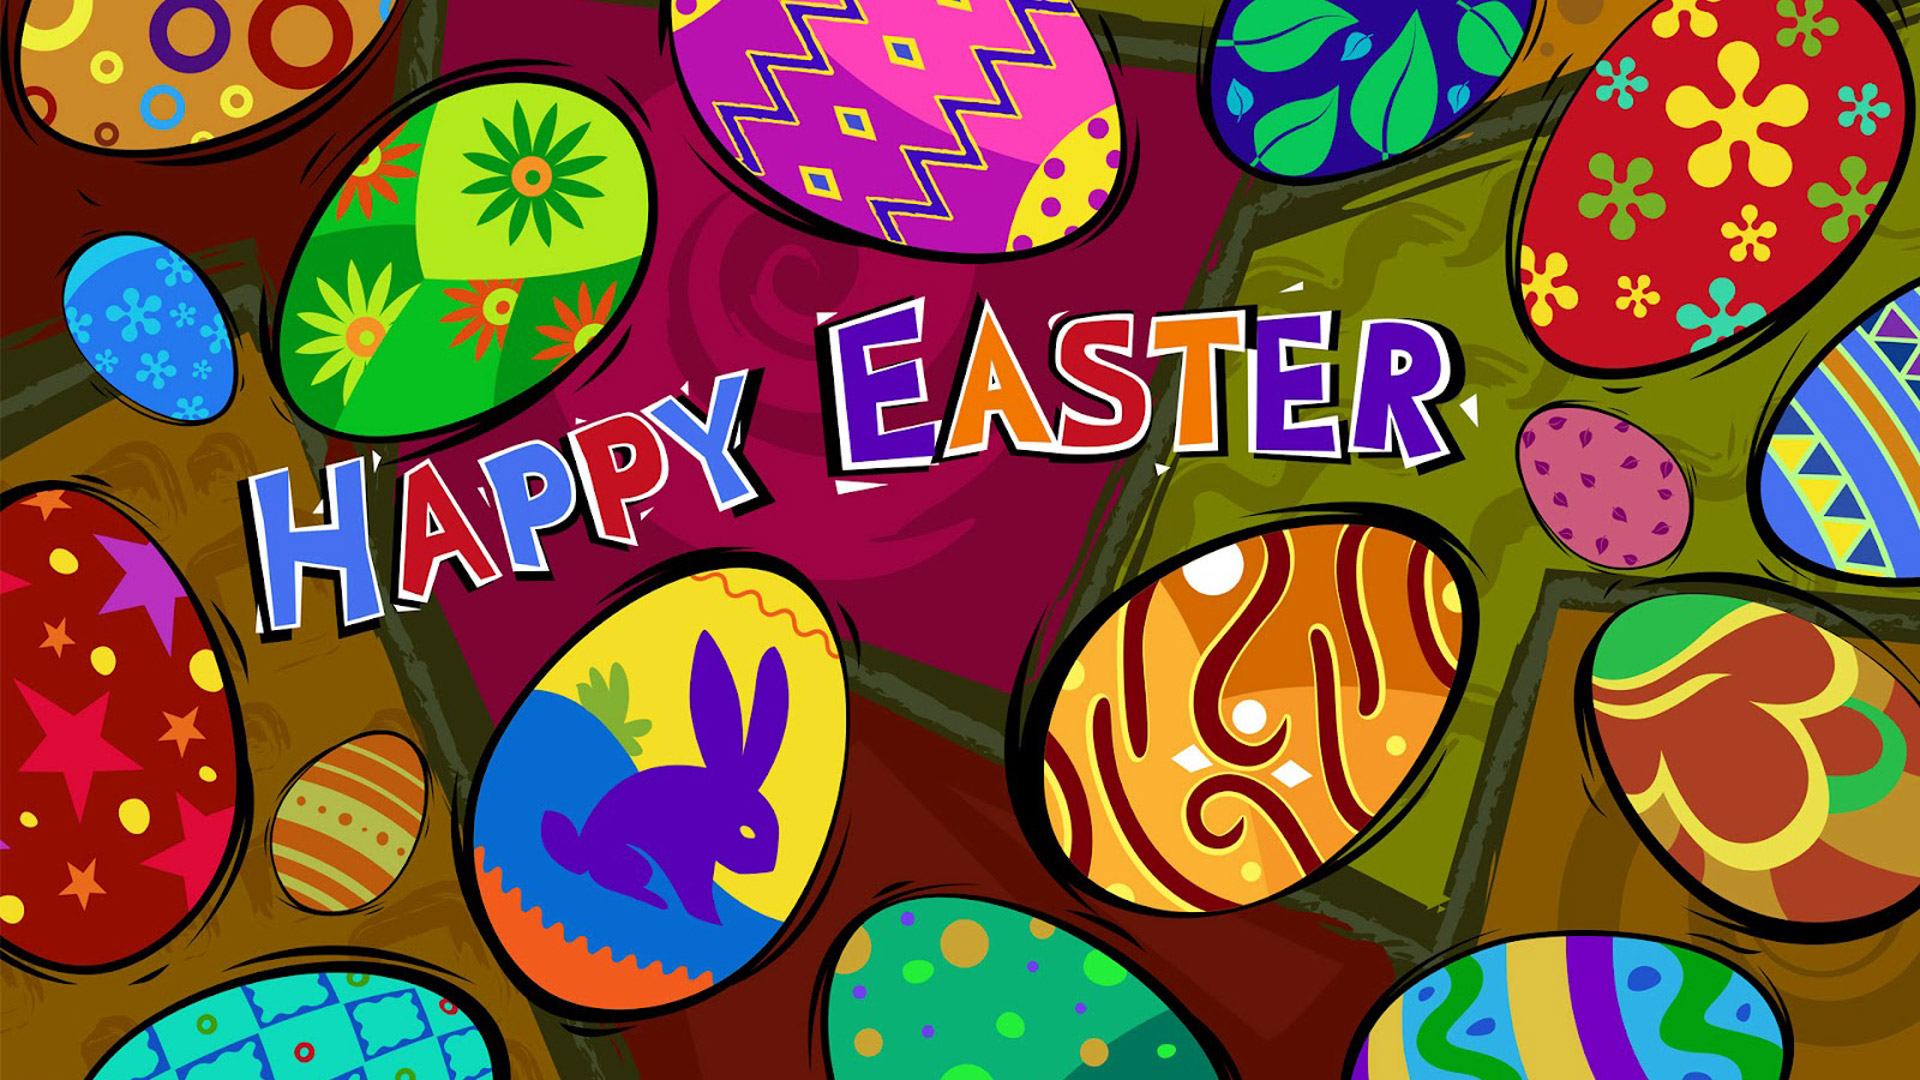 Celebrations Happy Easter Day 1080p Wide Screen Wallpaper 1080p